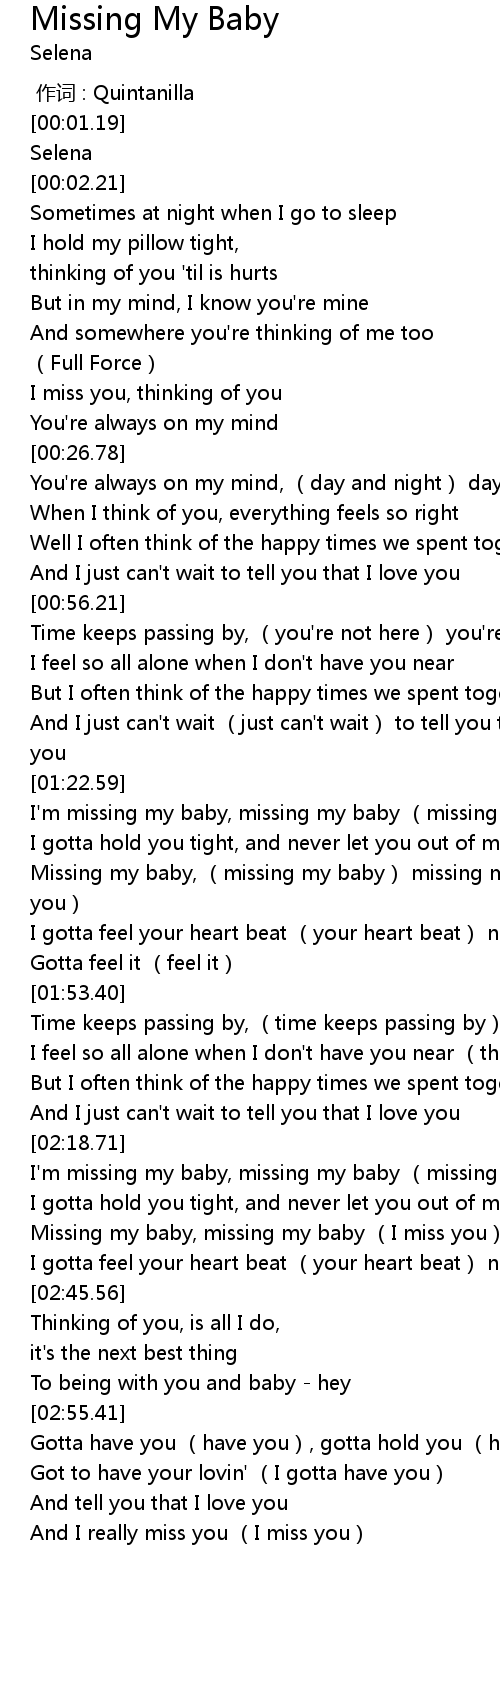 Missing My Baby Lyrics Follow Lyrics